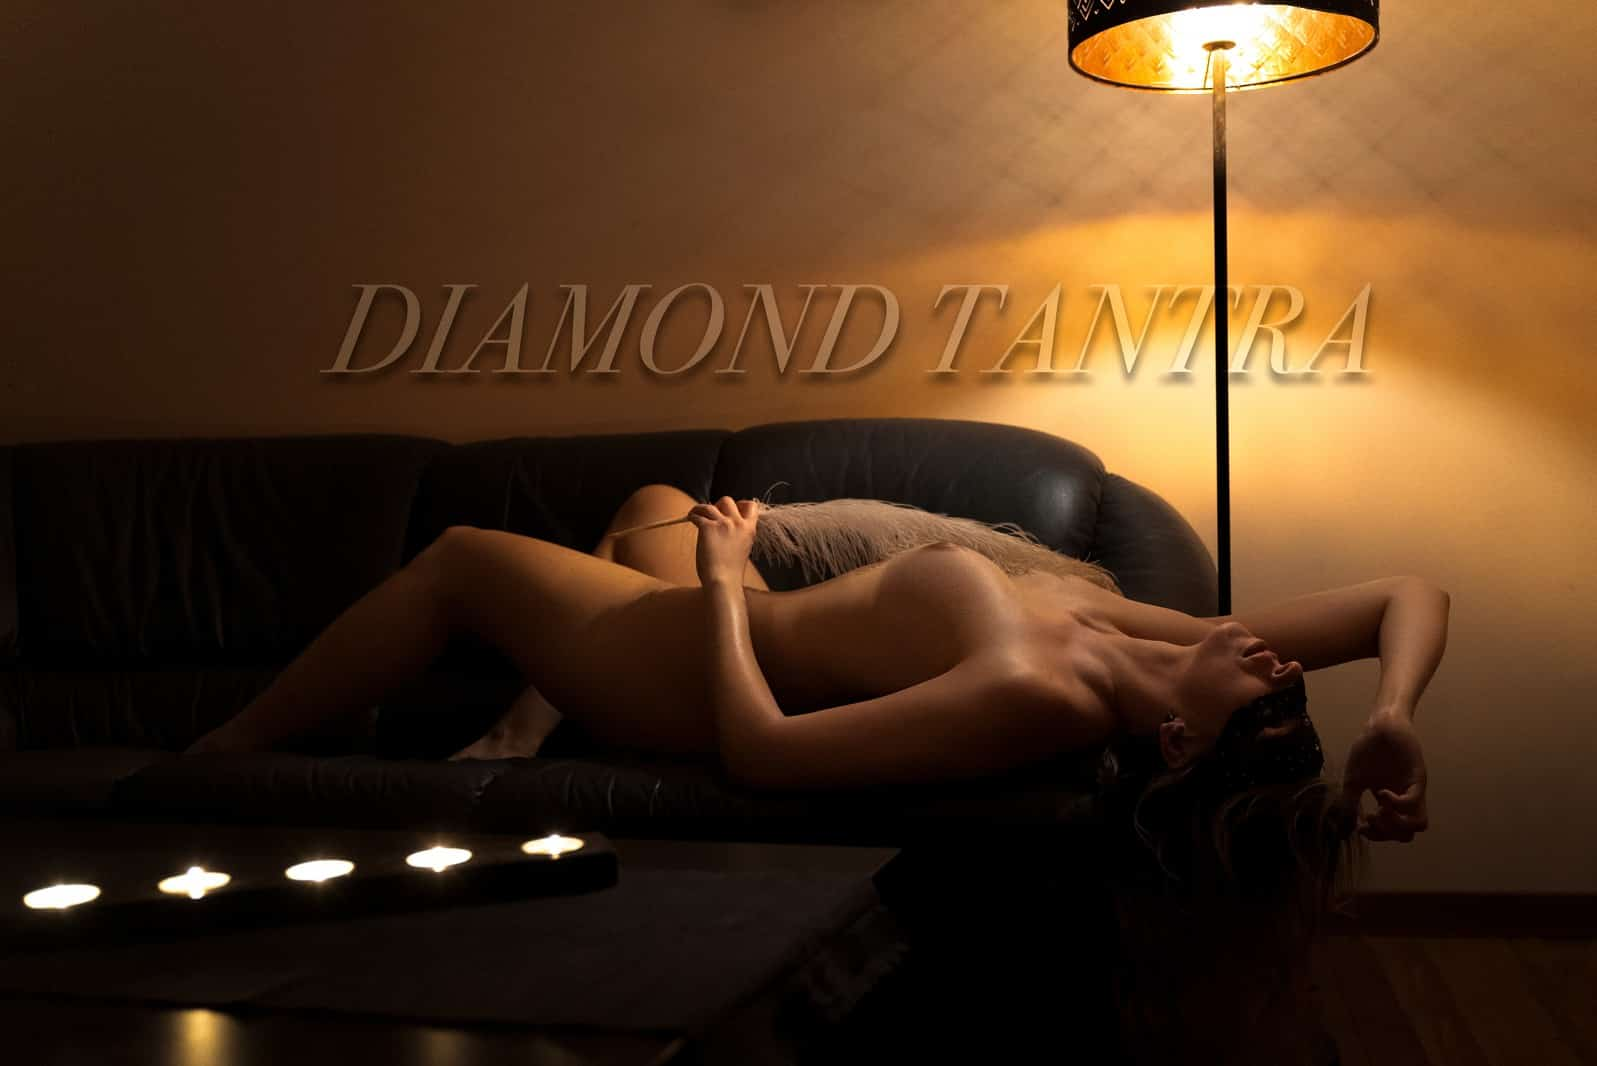 tantra lady